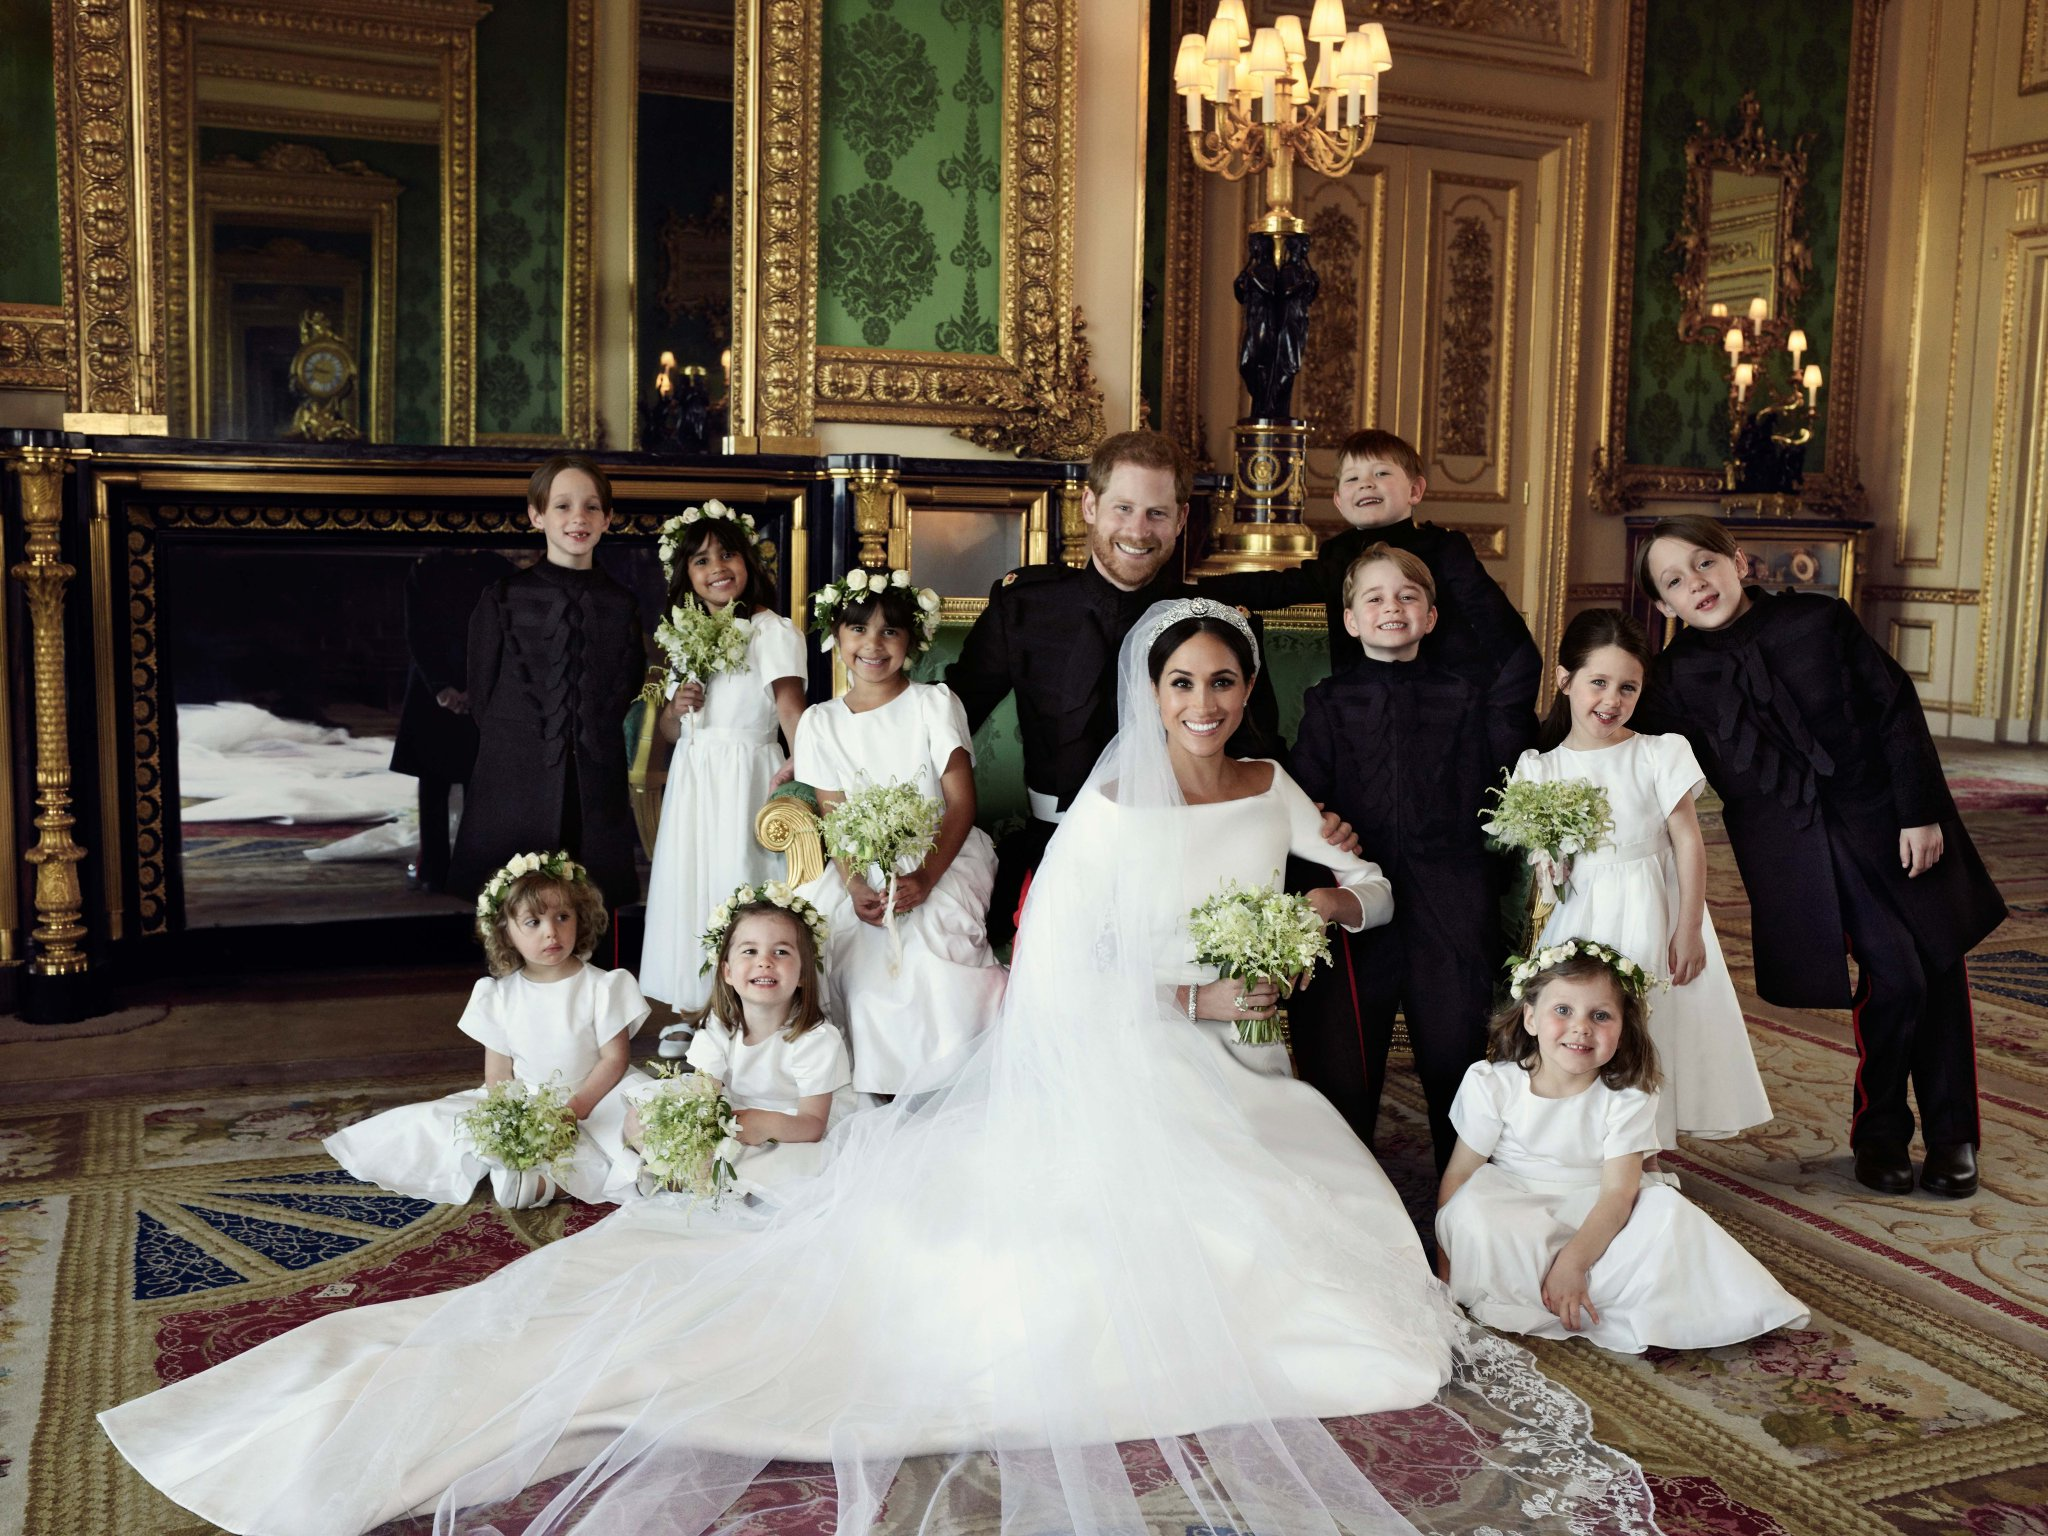 Meghan Markle, Prince Harry as the Duke and Duchess of Sussex in their wedding portrait with pageboys and bridesmaids